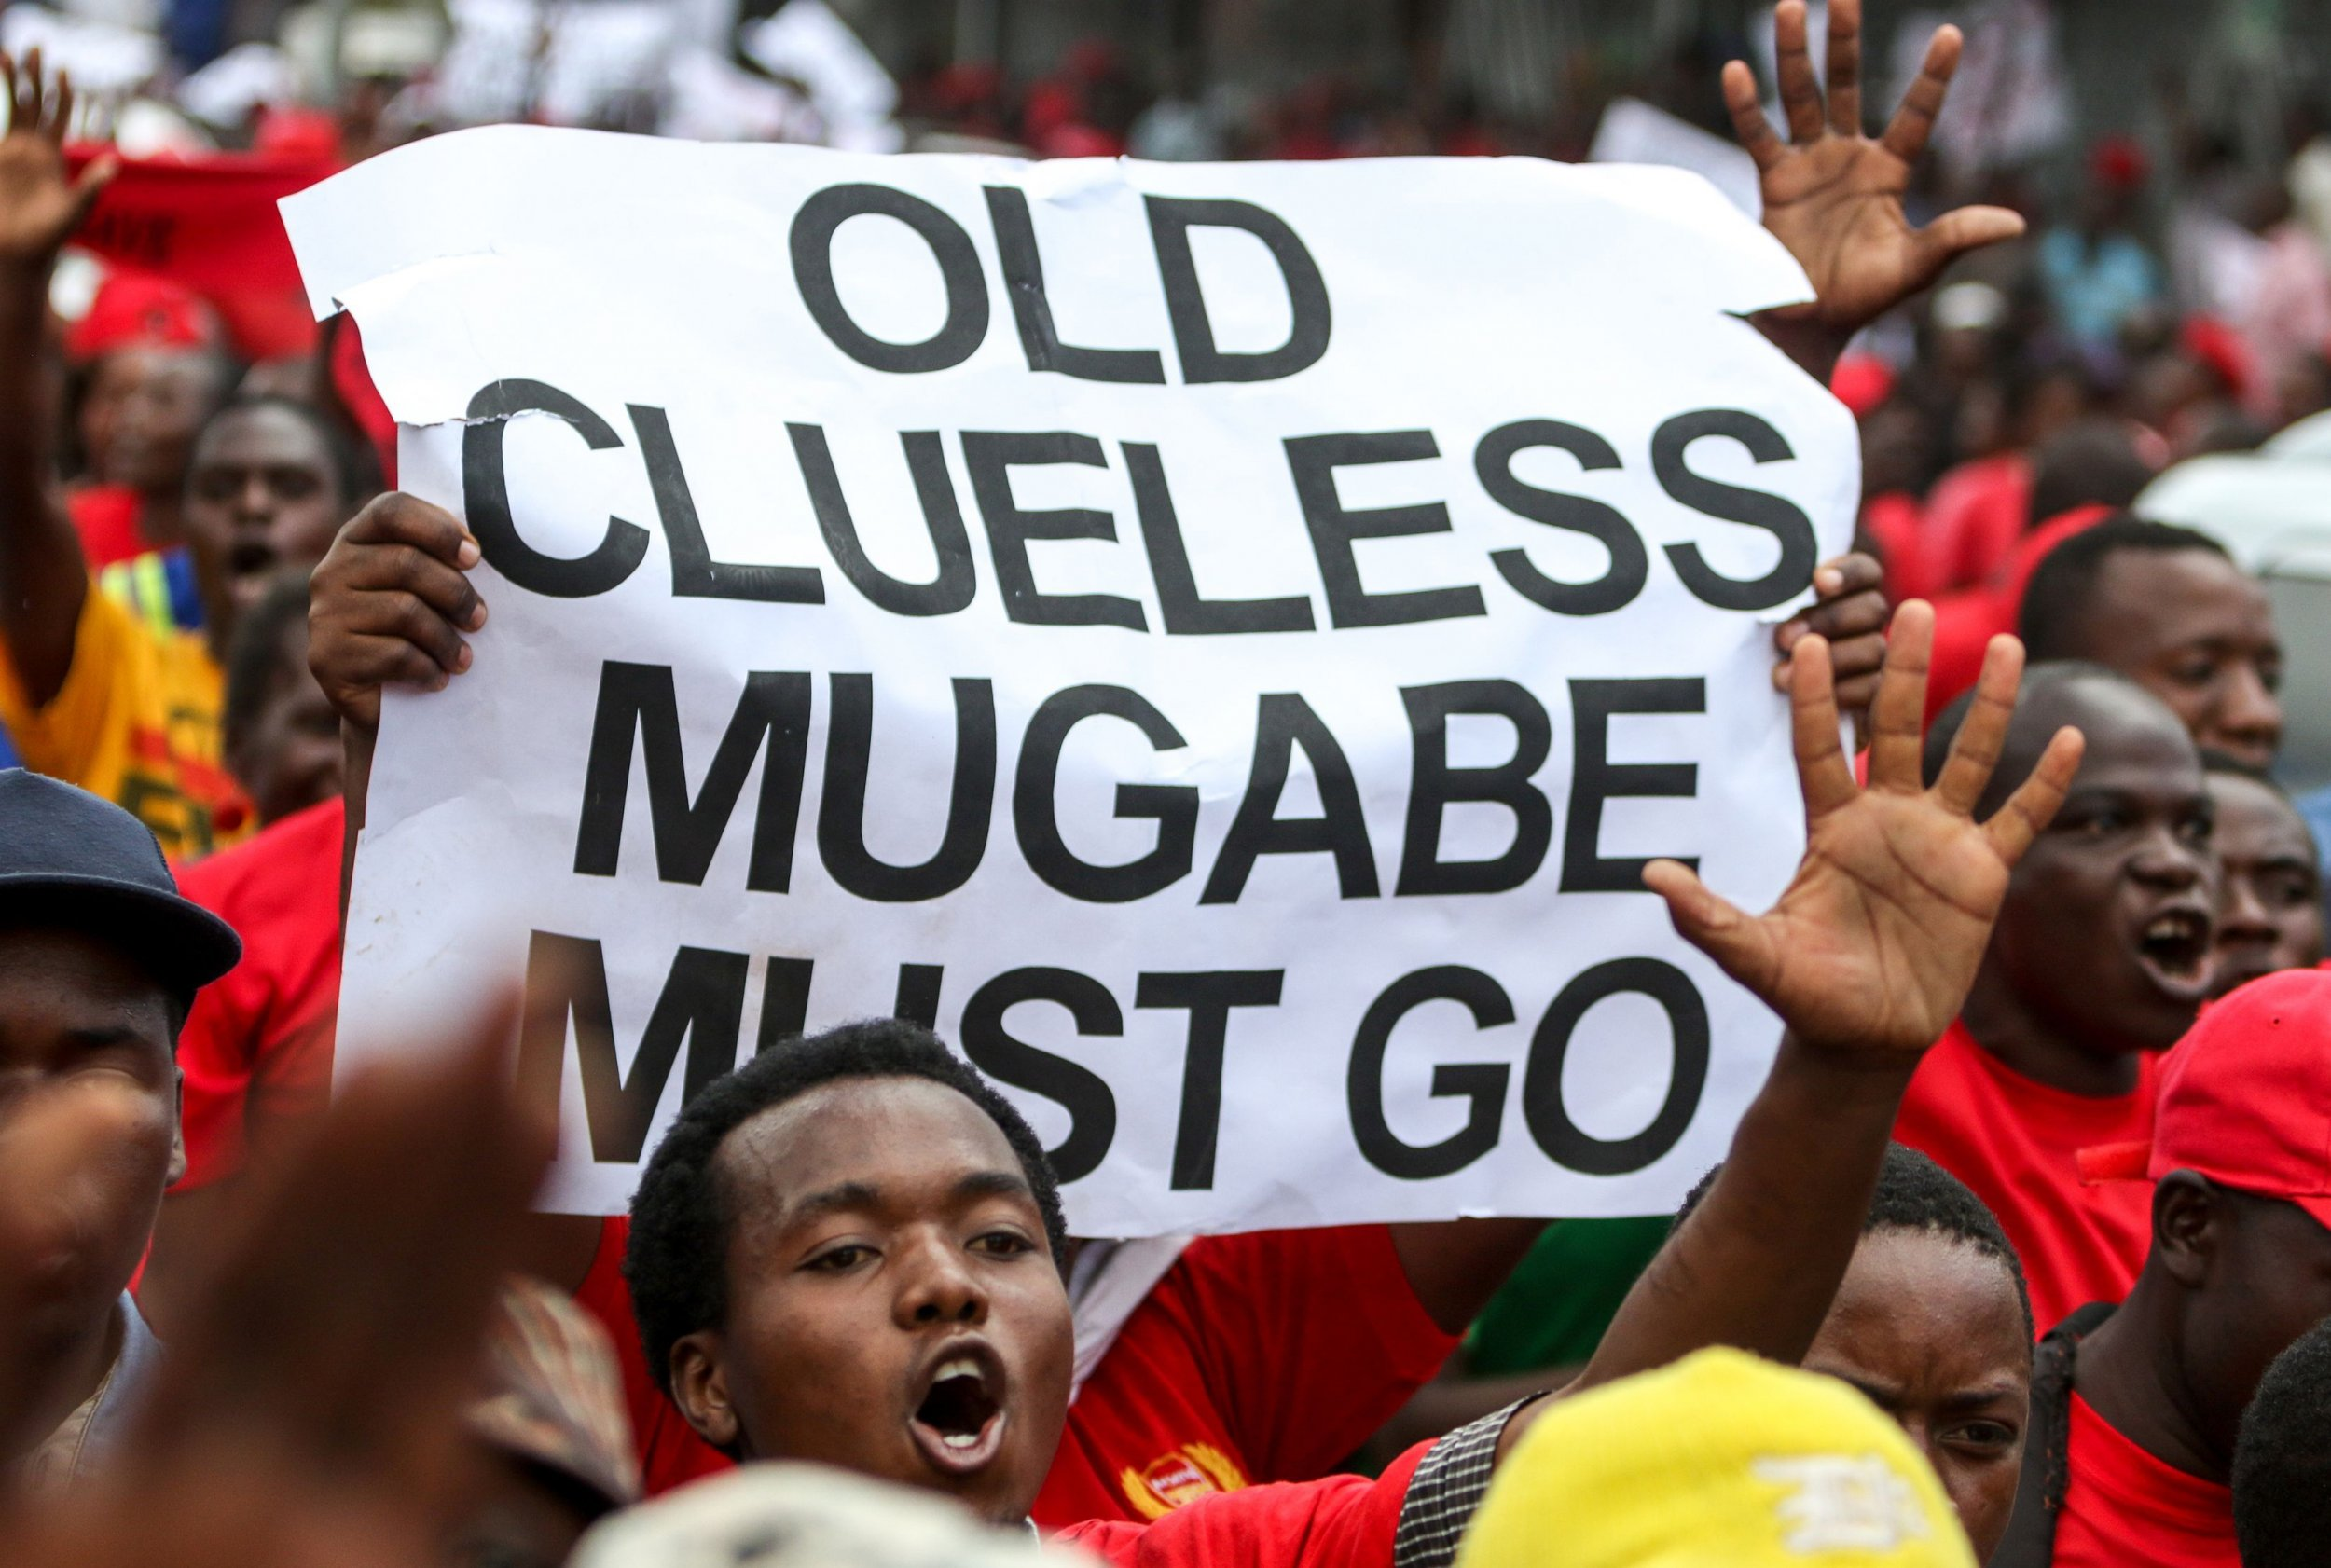 Anti-Robert Mugabe protesters in Harare, Zimbabwe.